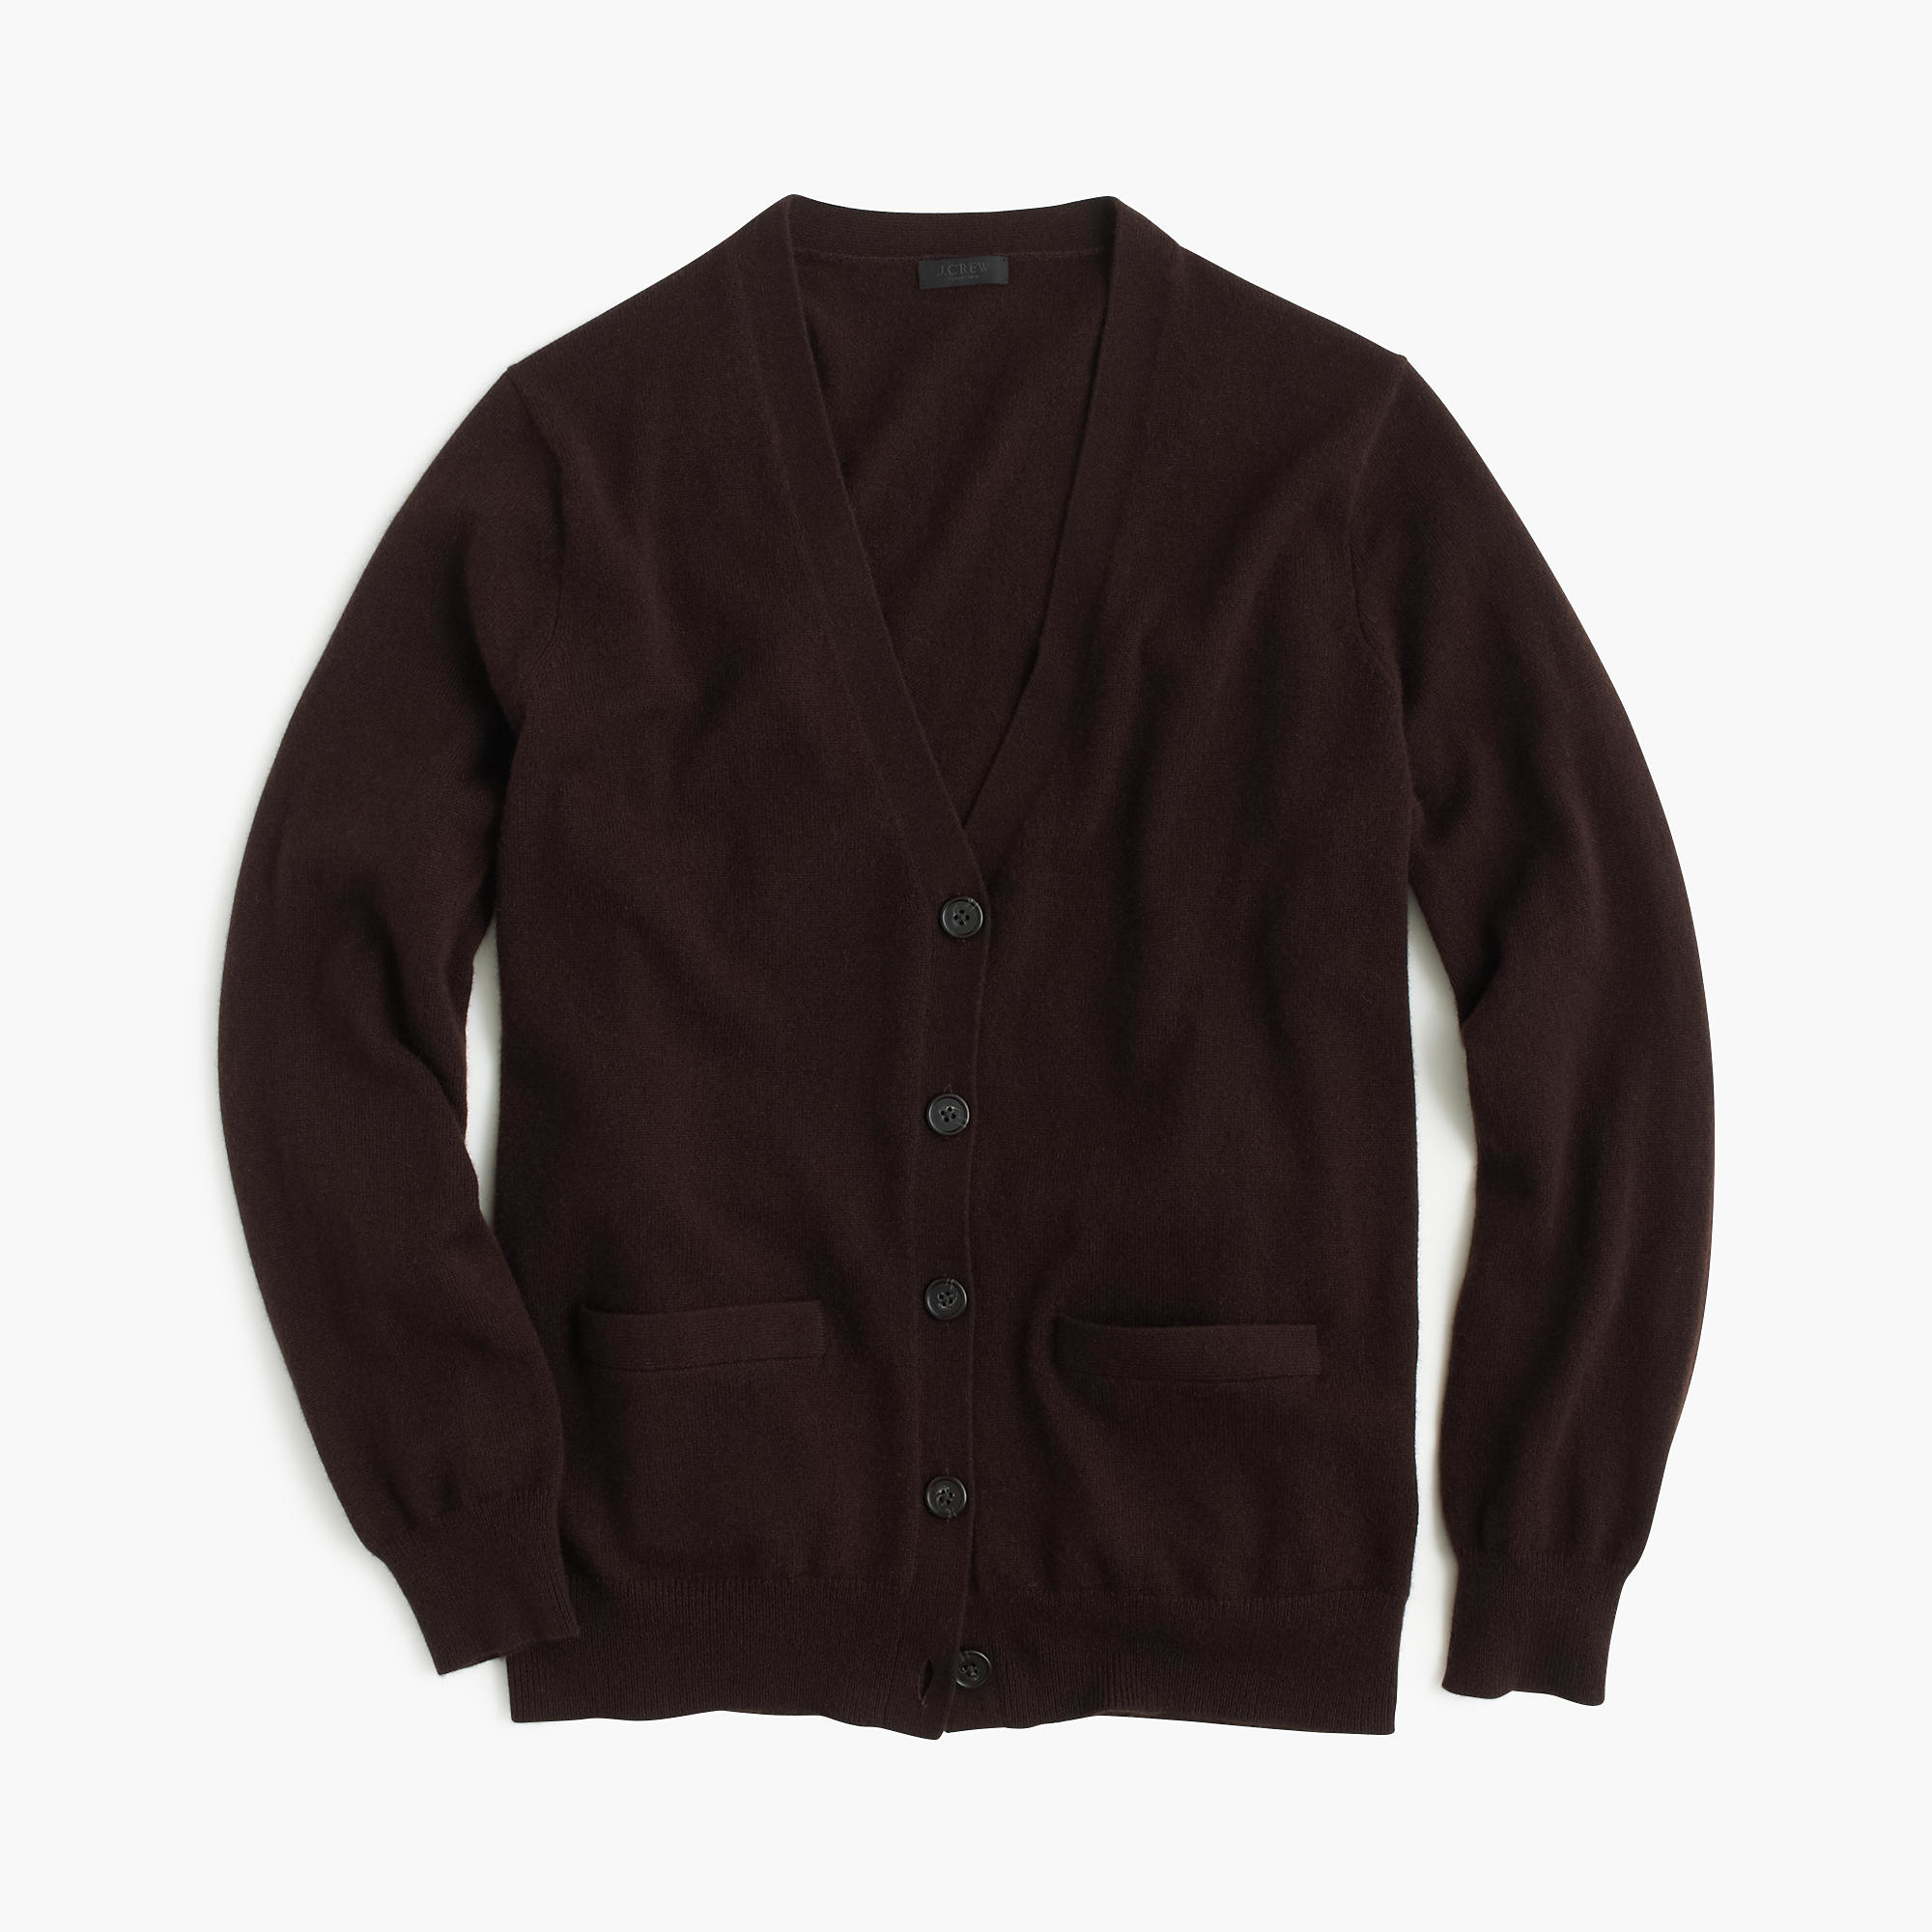 J.crew Italian Cashmere Boyfriend Cardigan Sweater in Brown | Lyst